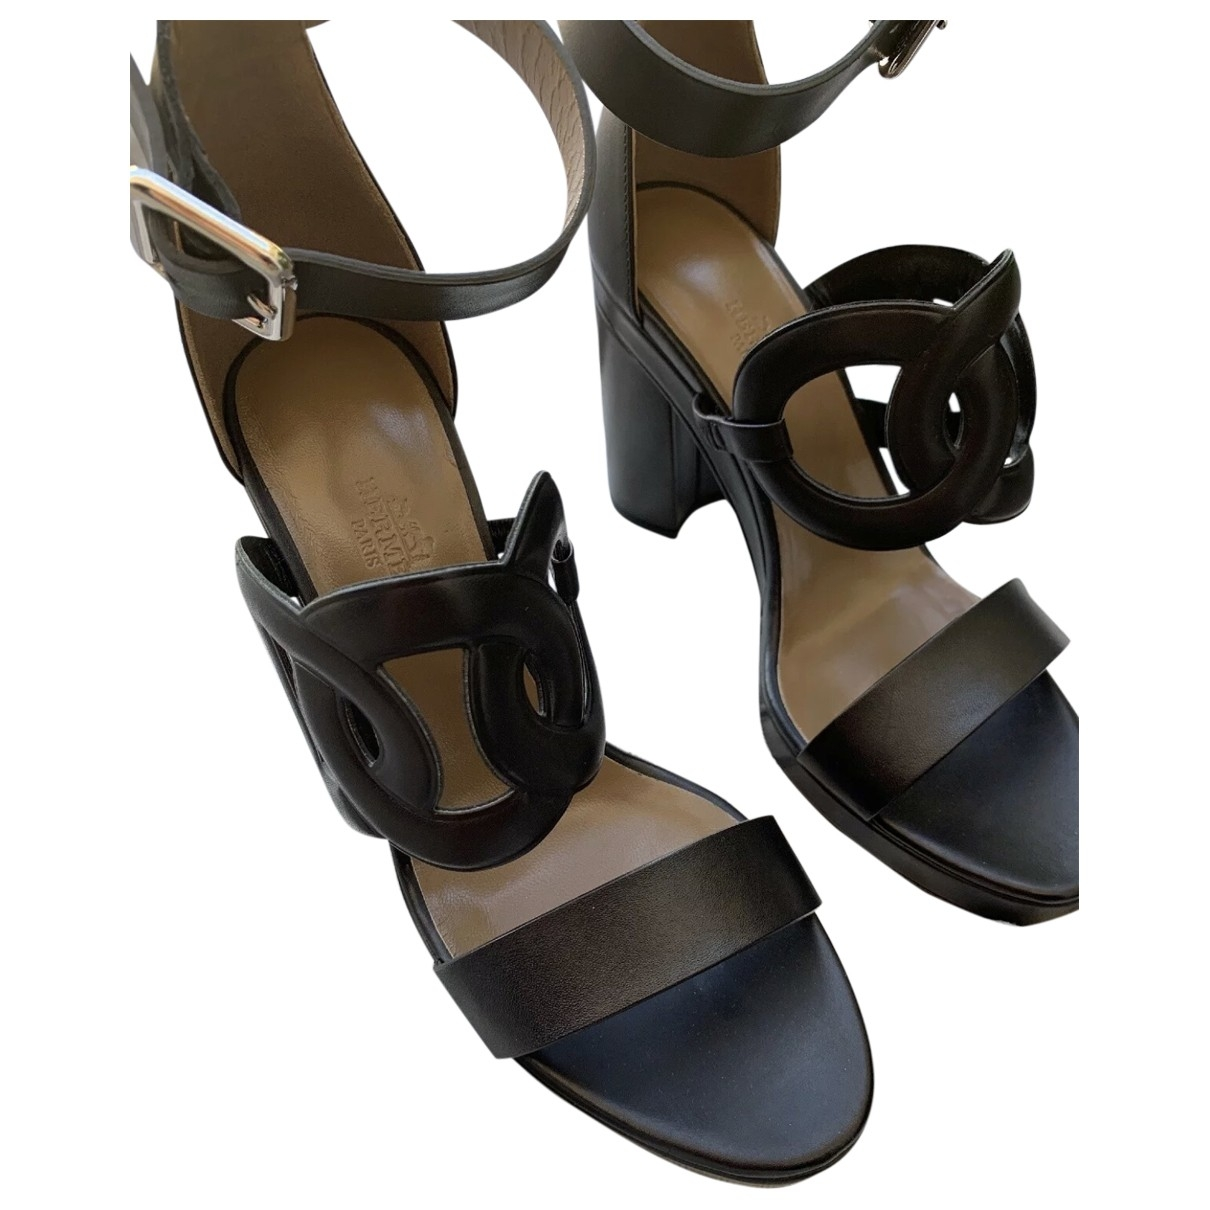 Hermès \N Black Leather Sandals for Women 38.5 EU